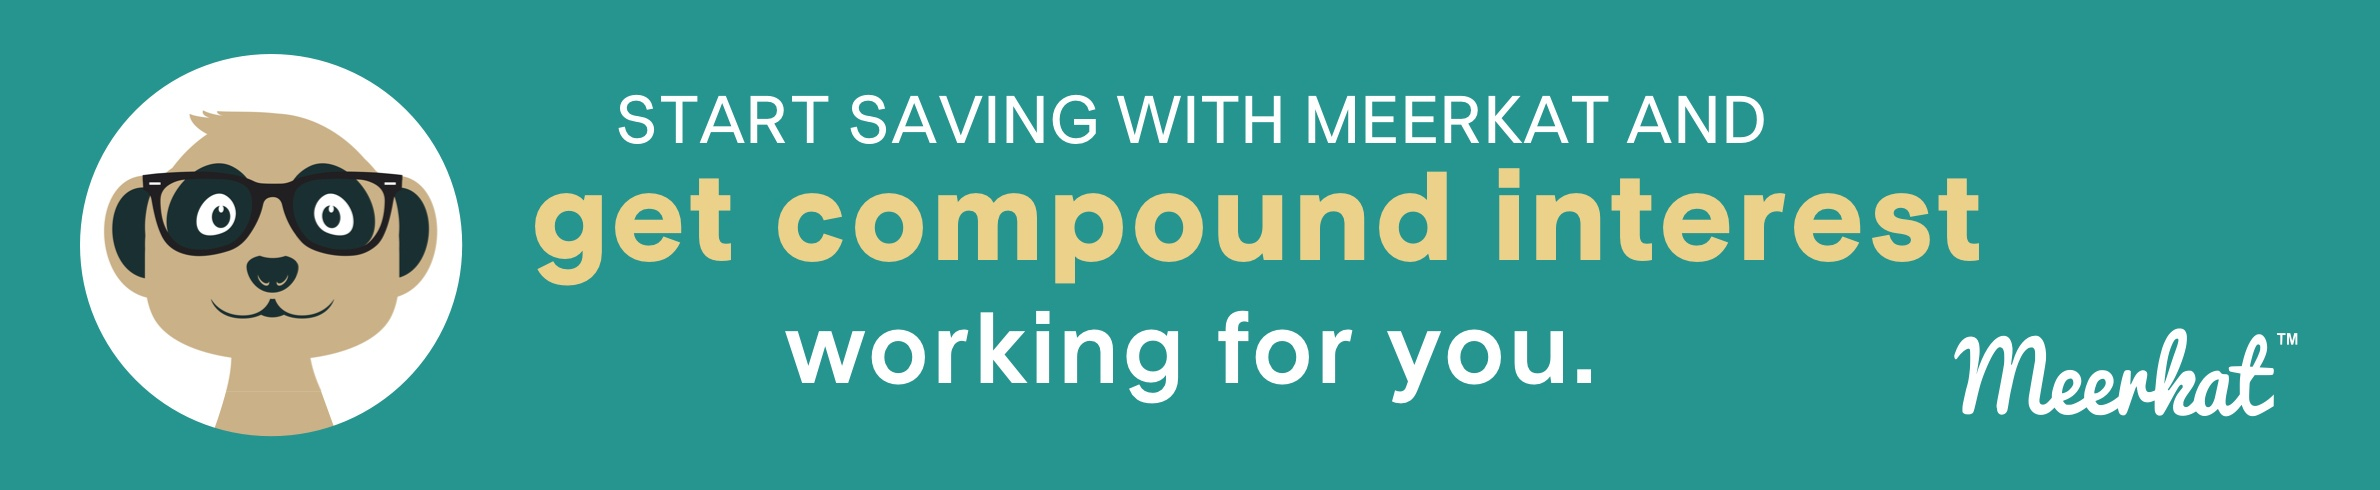 Start saving and get compound interest working for you